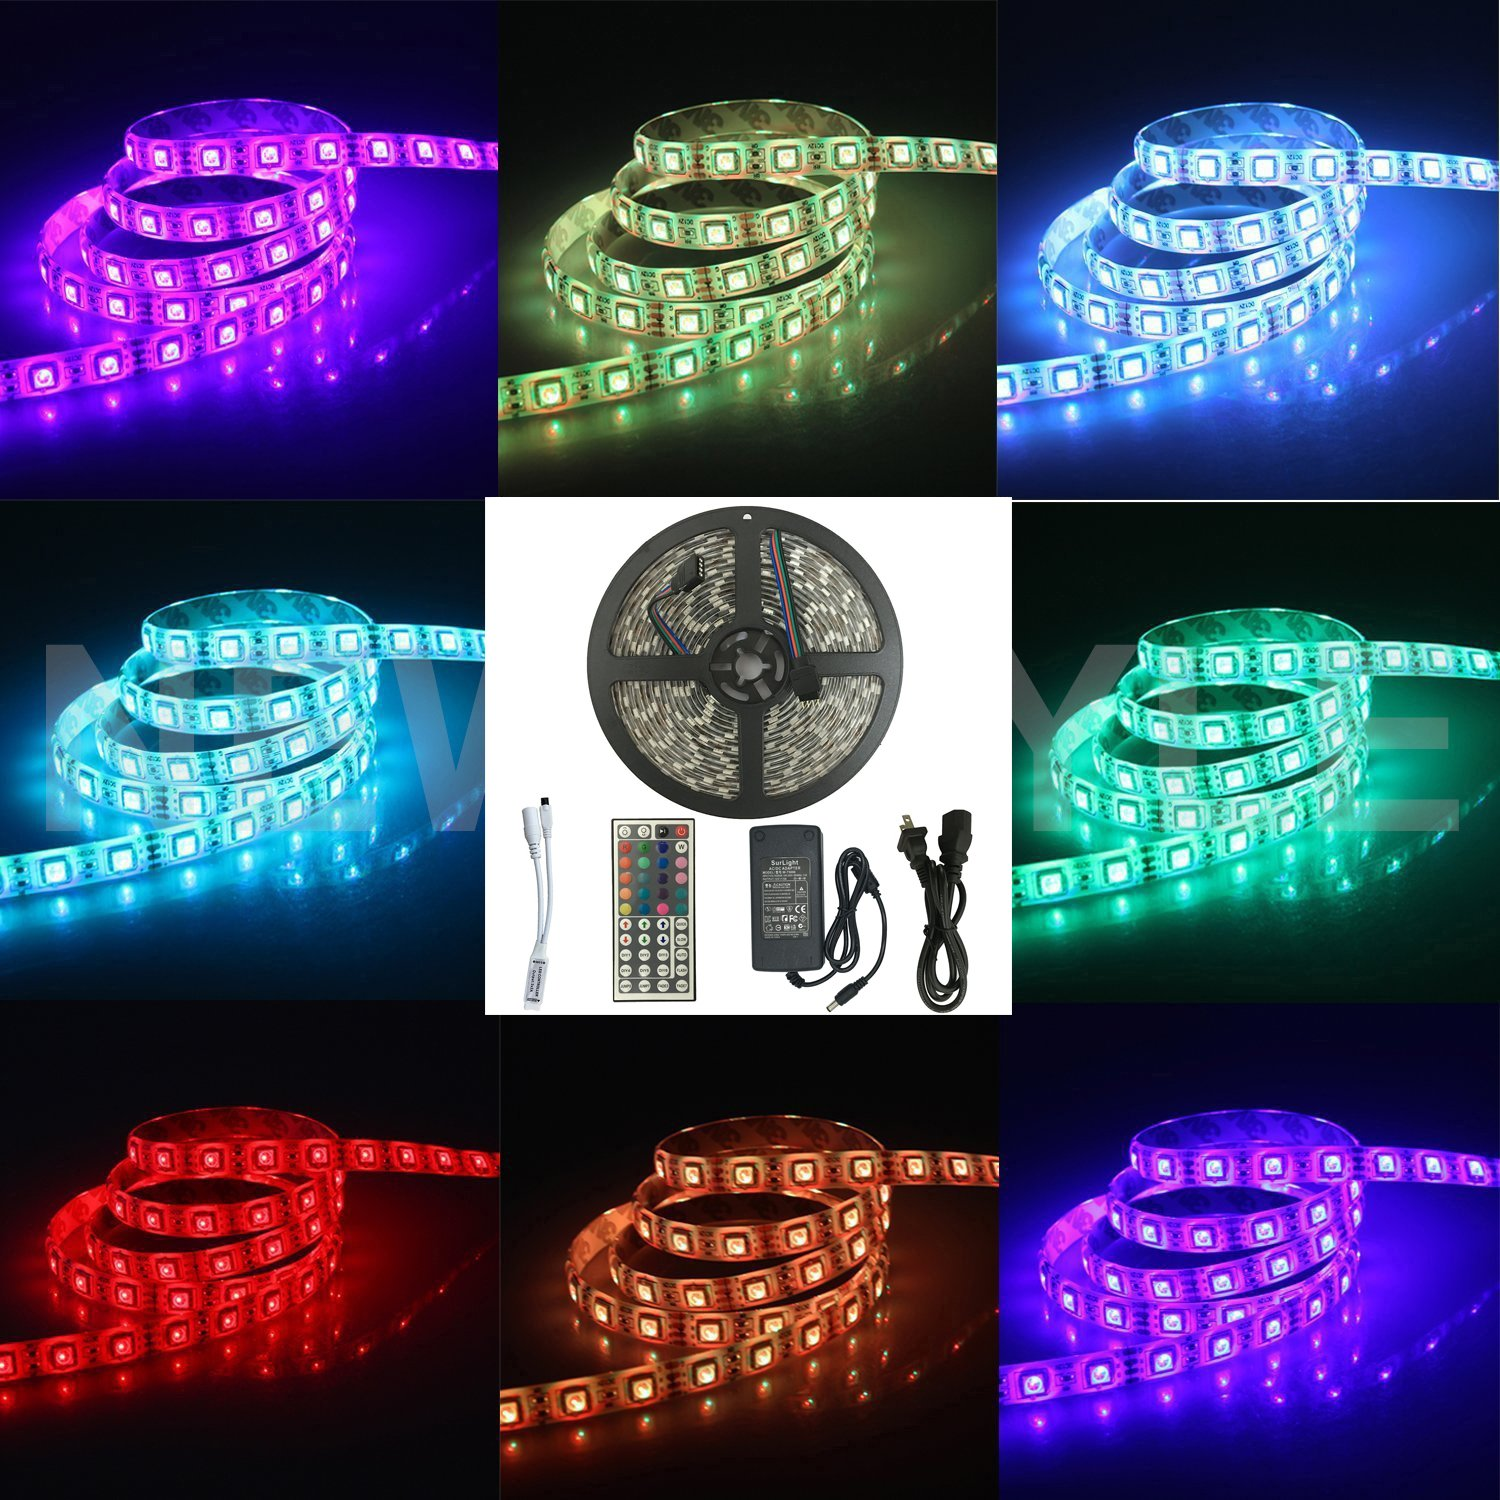 ... Flexible Color Changing Light Strip Kit With 44 Key IR Remote Control U0026  12V 5A Power Supply For Home Kitchen Indoor Outdoor Use: Garden U0026 Outdoor